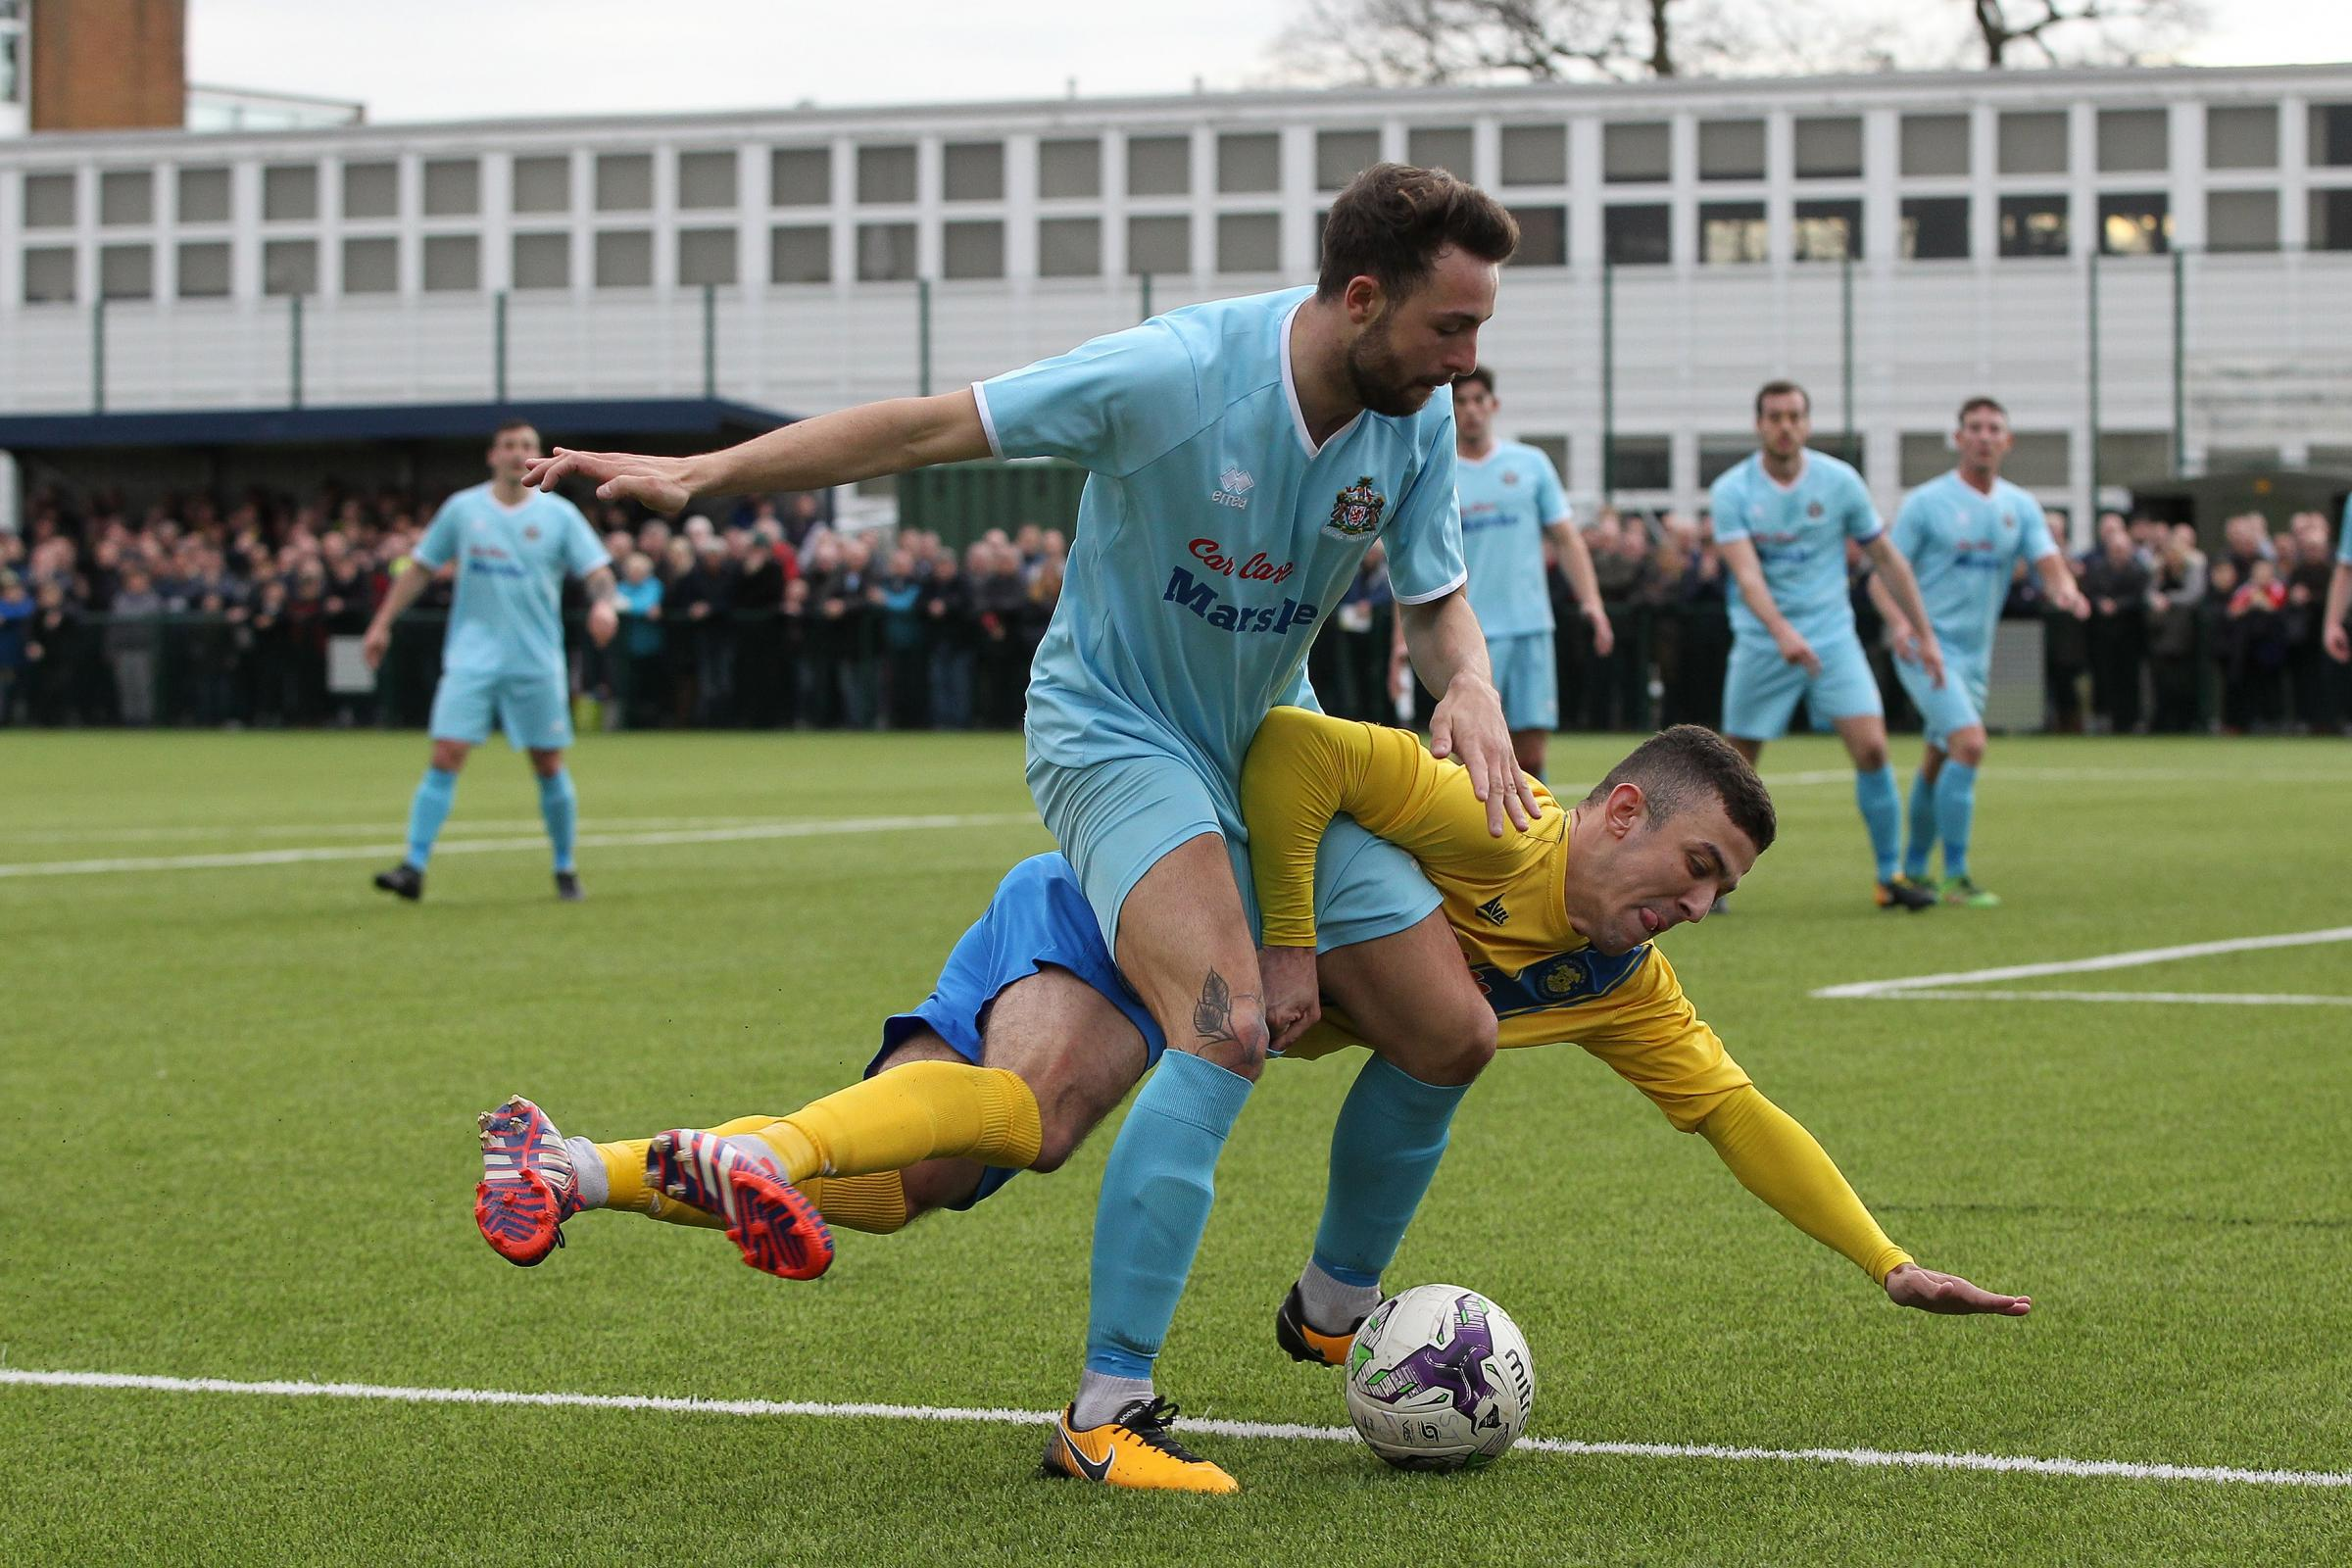 Stockton's James Risborough battles with Marske's James Fairley during the The Buildbase FA Vase match between Stockton Town and Marske United at Bishopton Road West, Stockton on Tees on Saturday 24th March 2018. (Credit: Mark Fletcher)